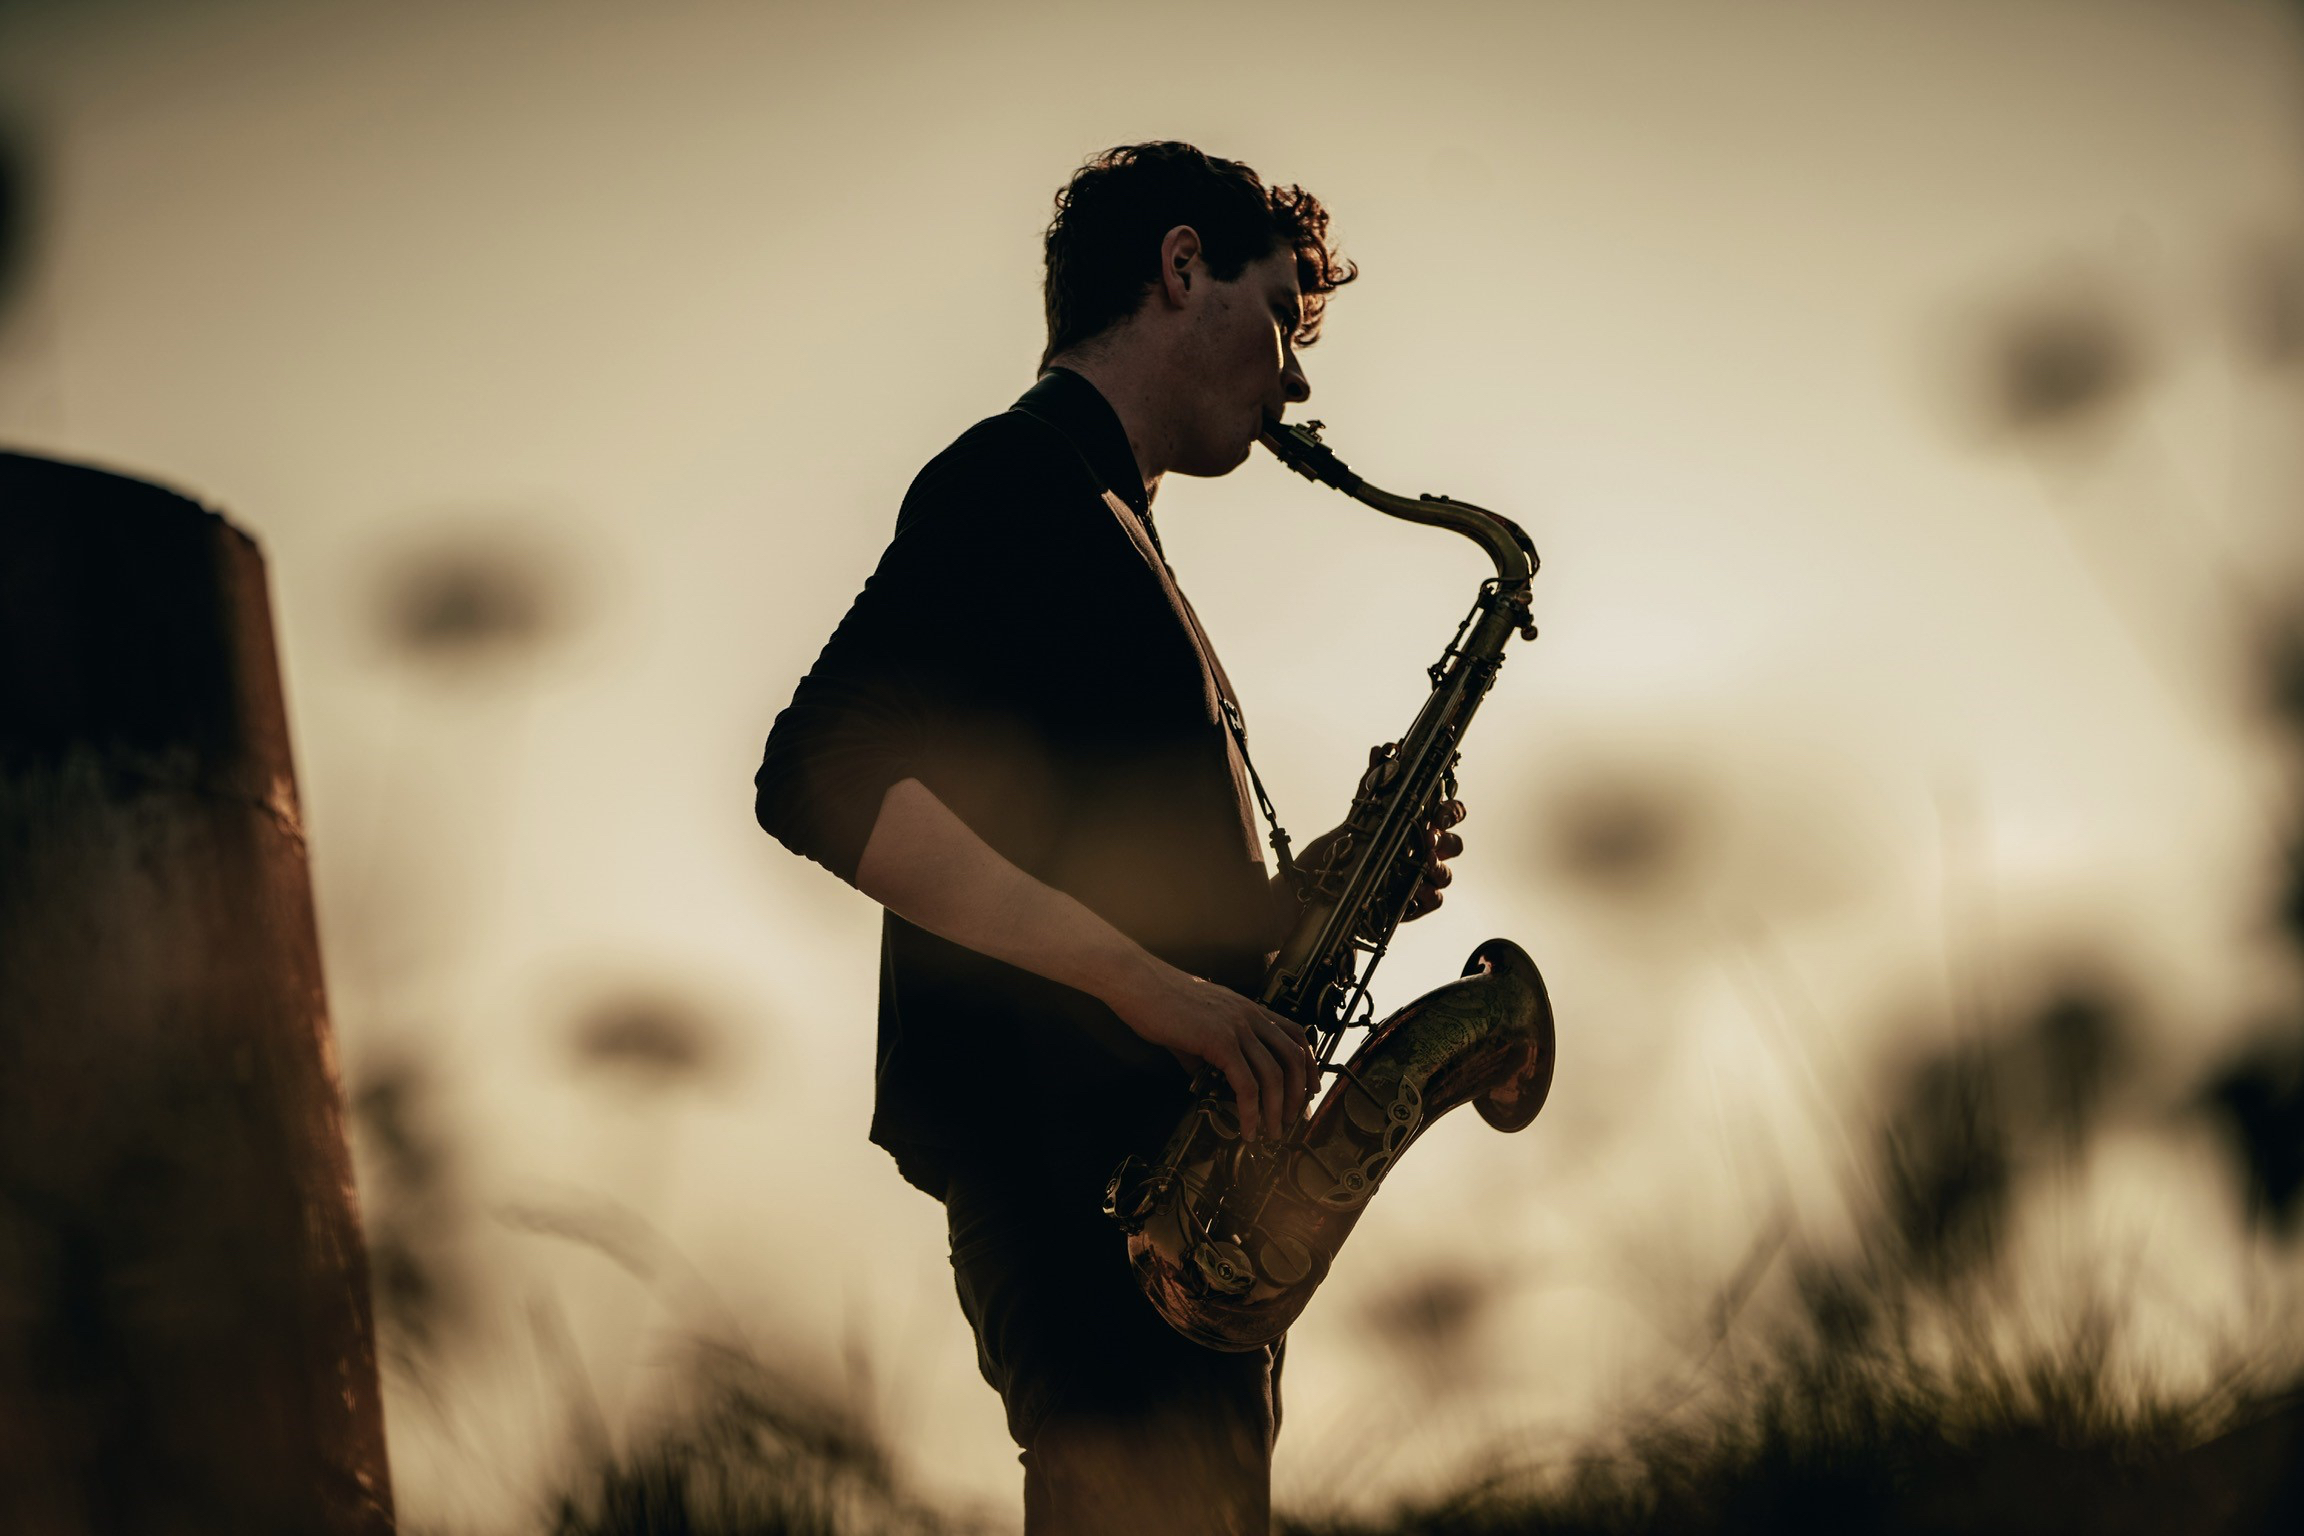 RCS student Matt Carmichael plays saxophone in a natural setting. He is a finalist in the BBC Young Jazz Musician 2020.